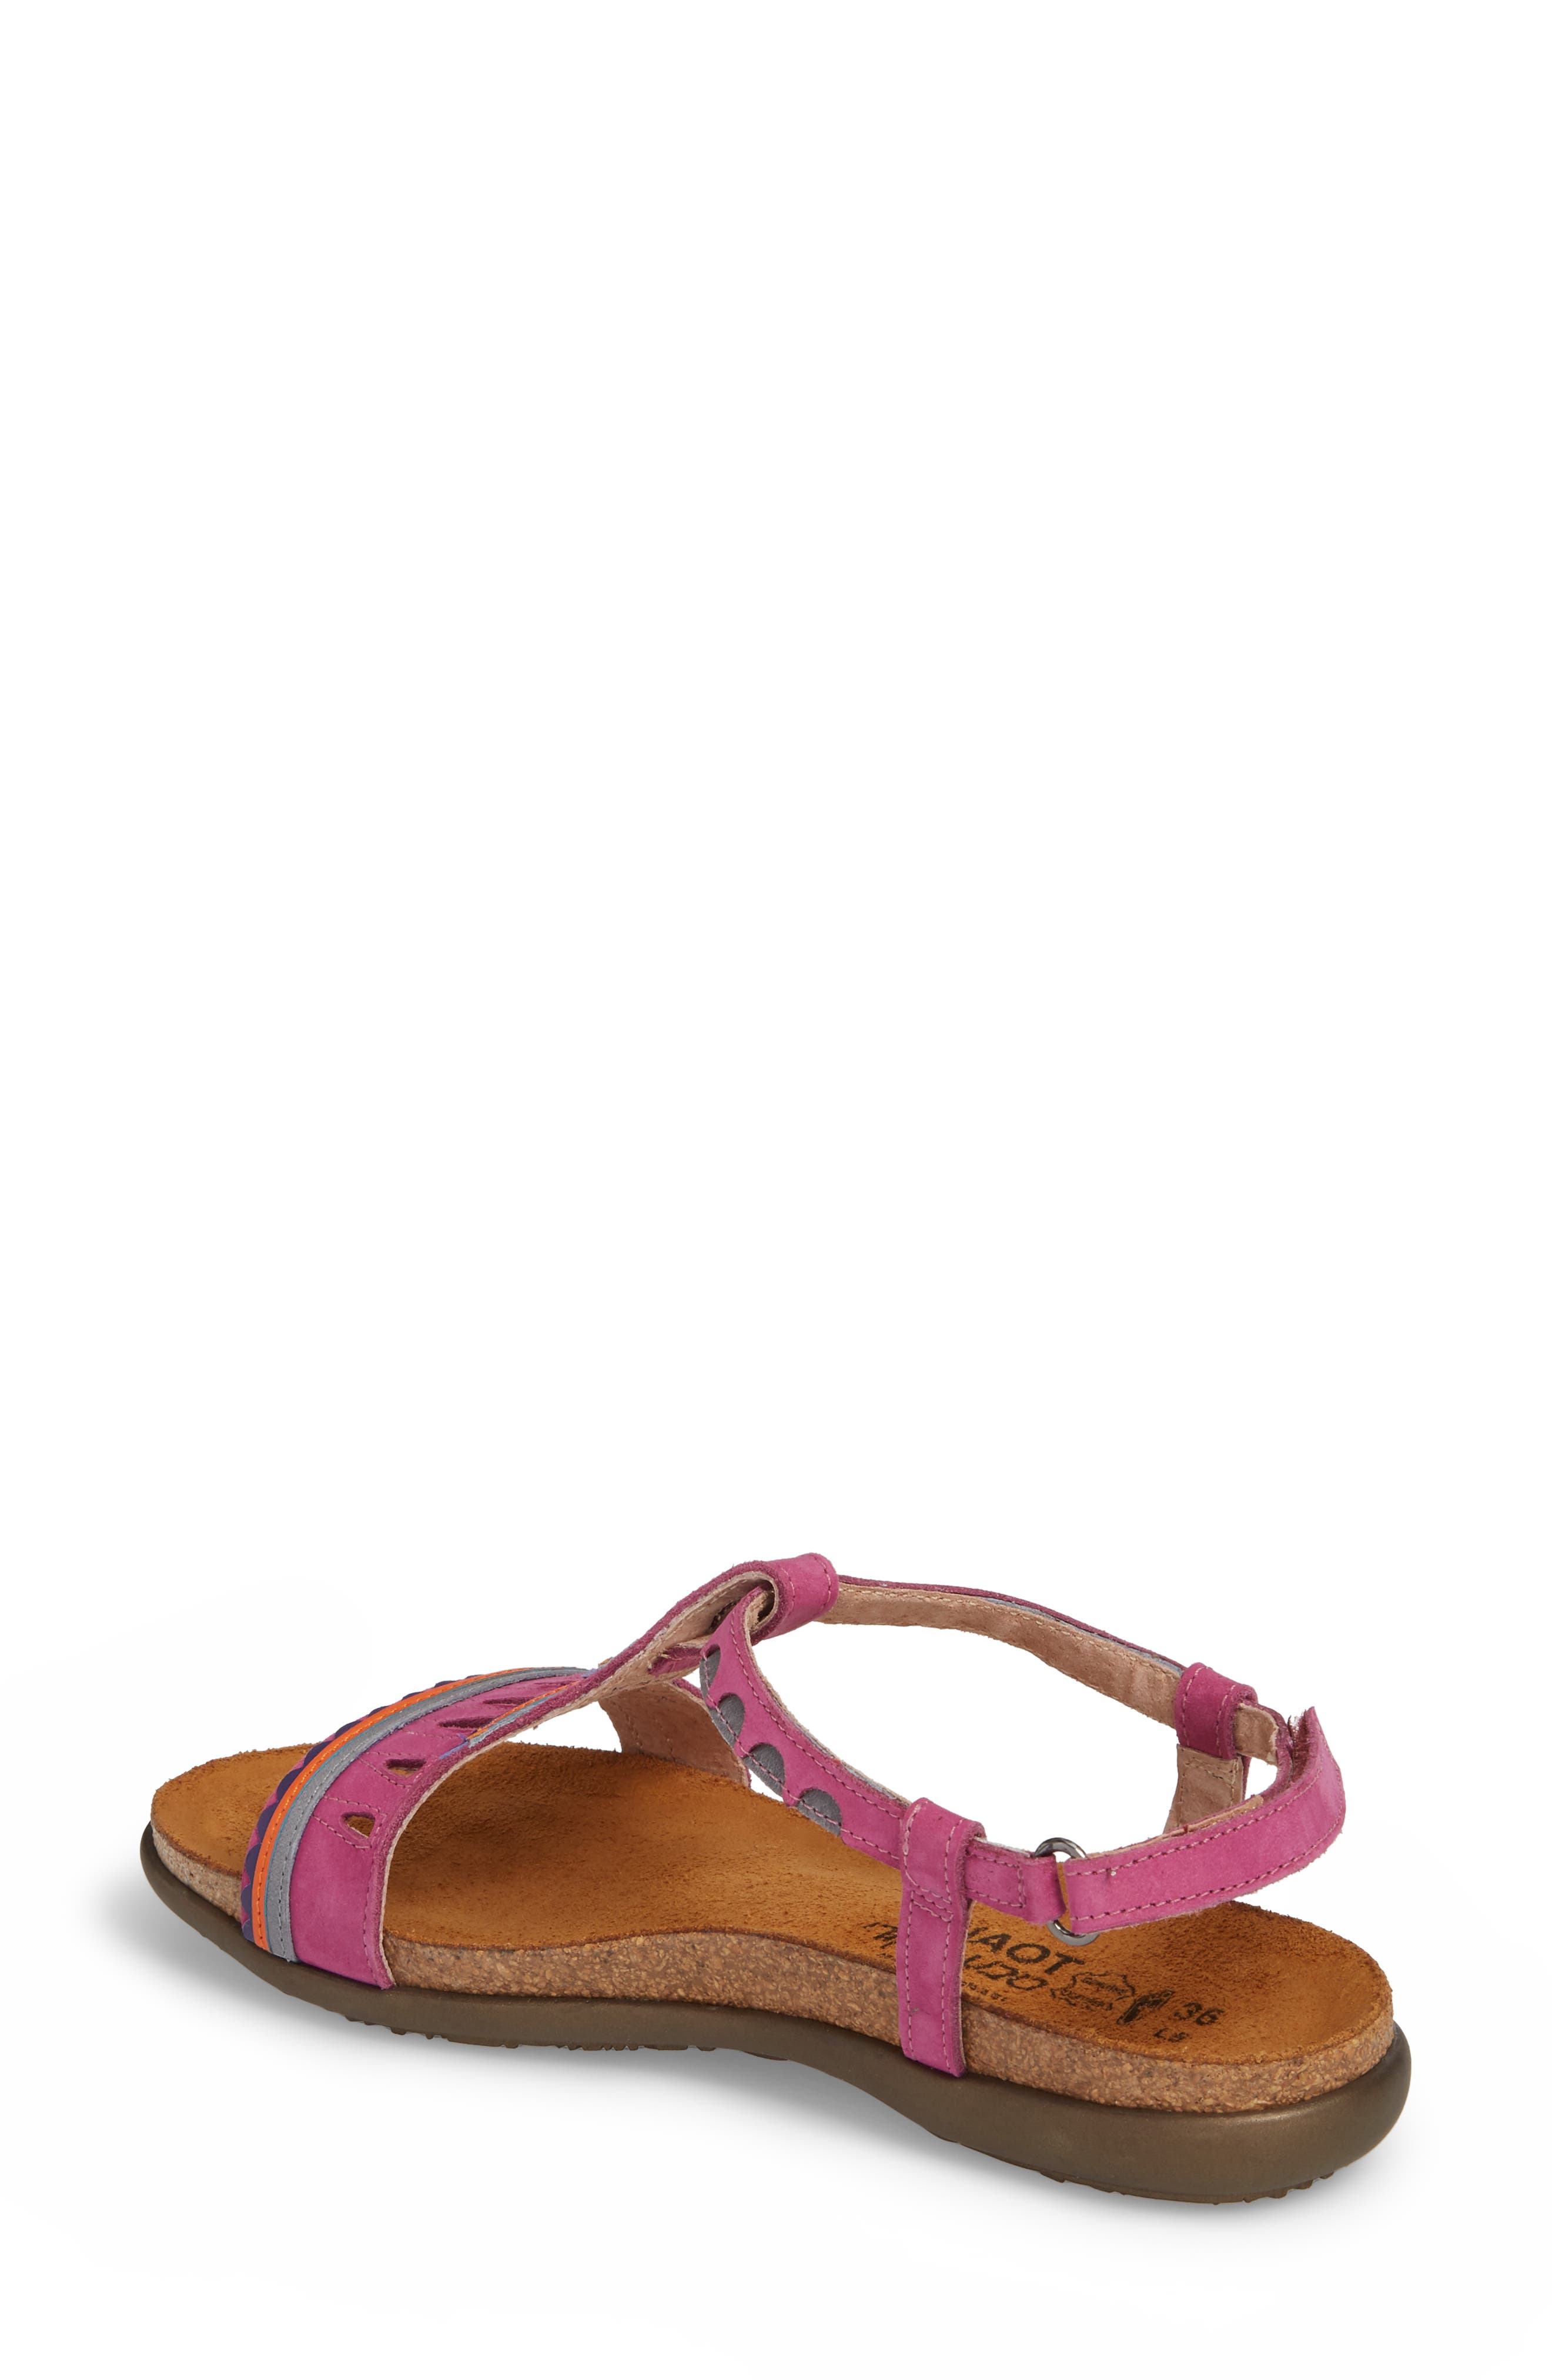 Odelia Perforated T-Strap Sandal,                             Alternate thumbnail 2, color,                             PINK PLUM NUBUCK